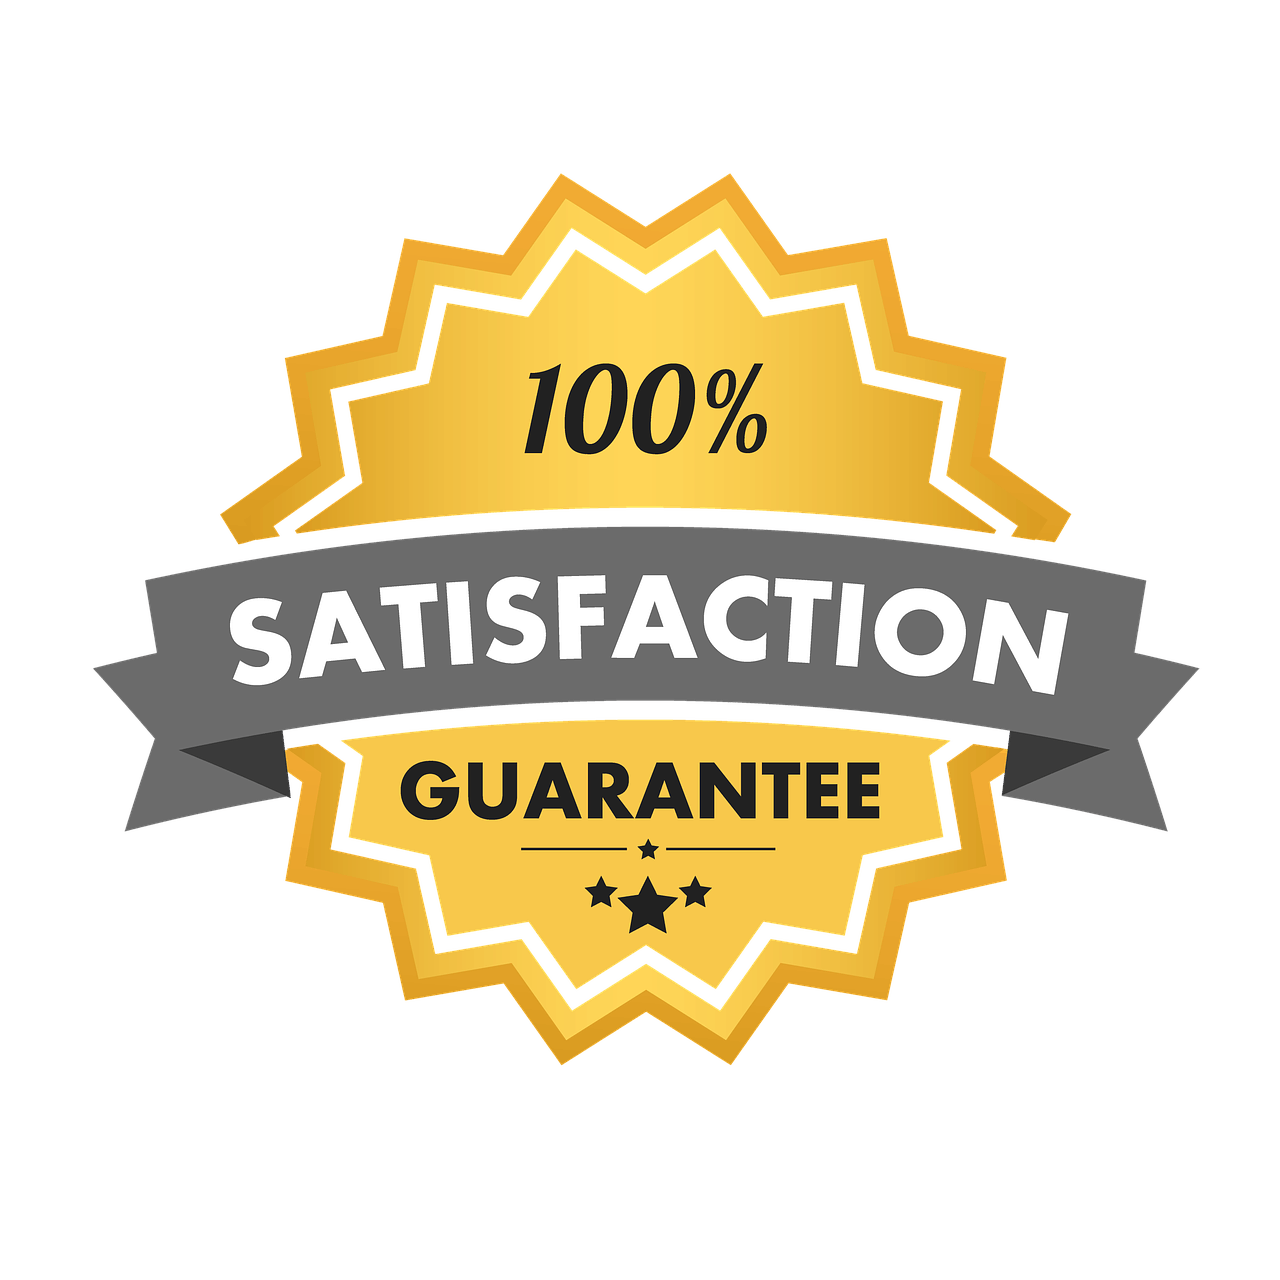 satisfaction guarantee, 100 satisfaction, seal